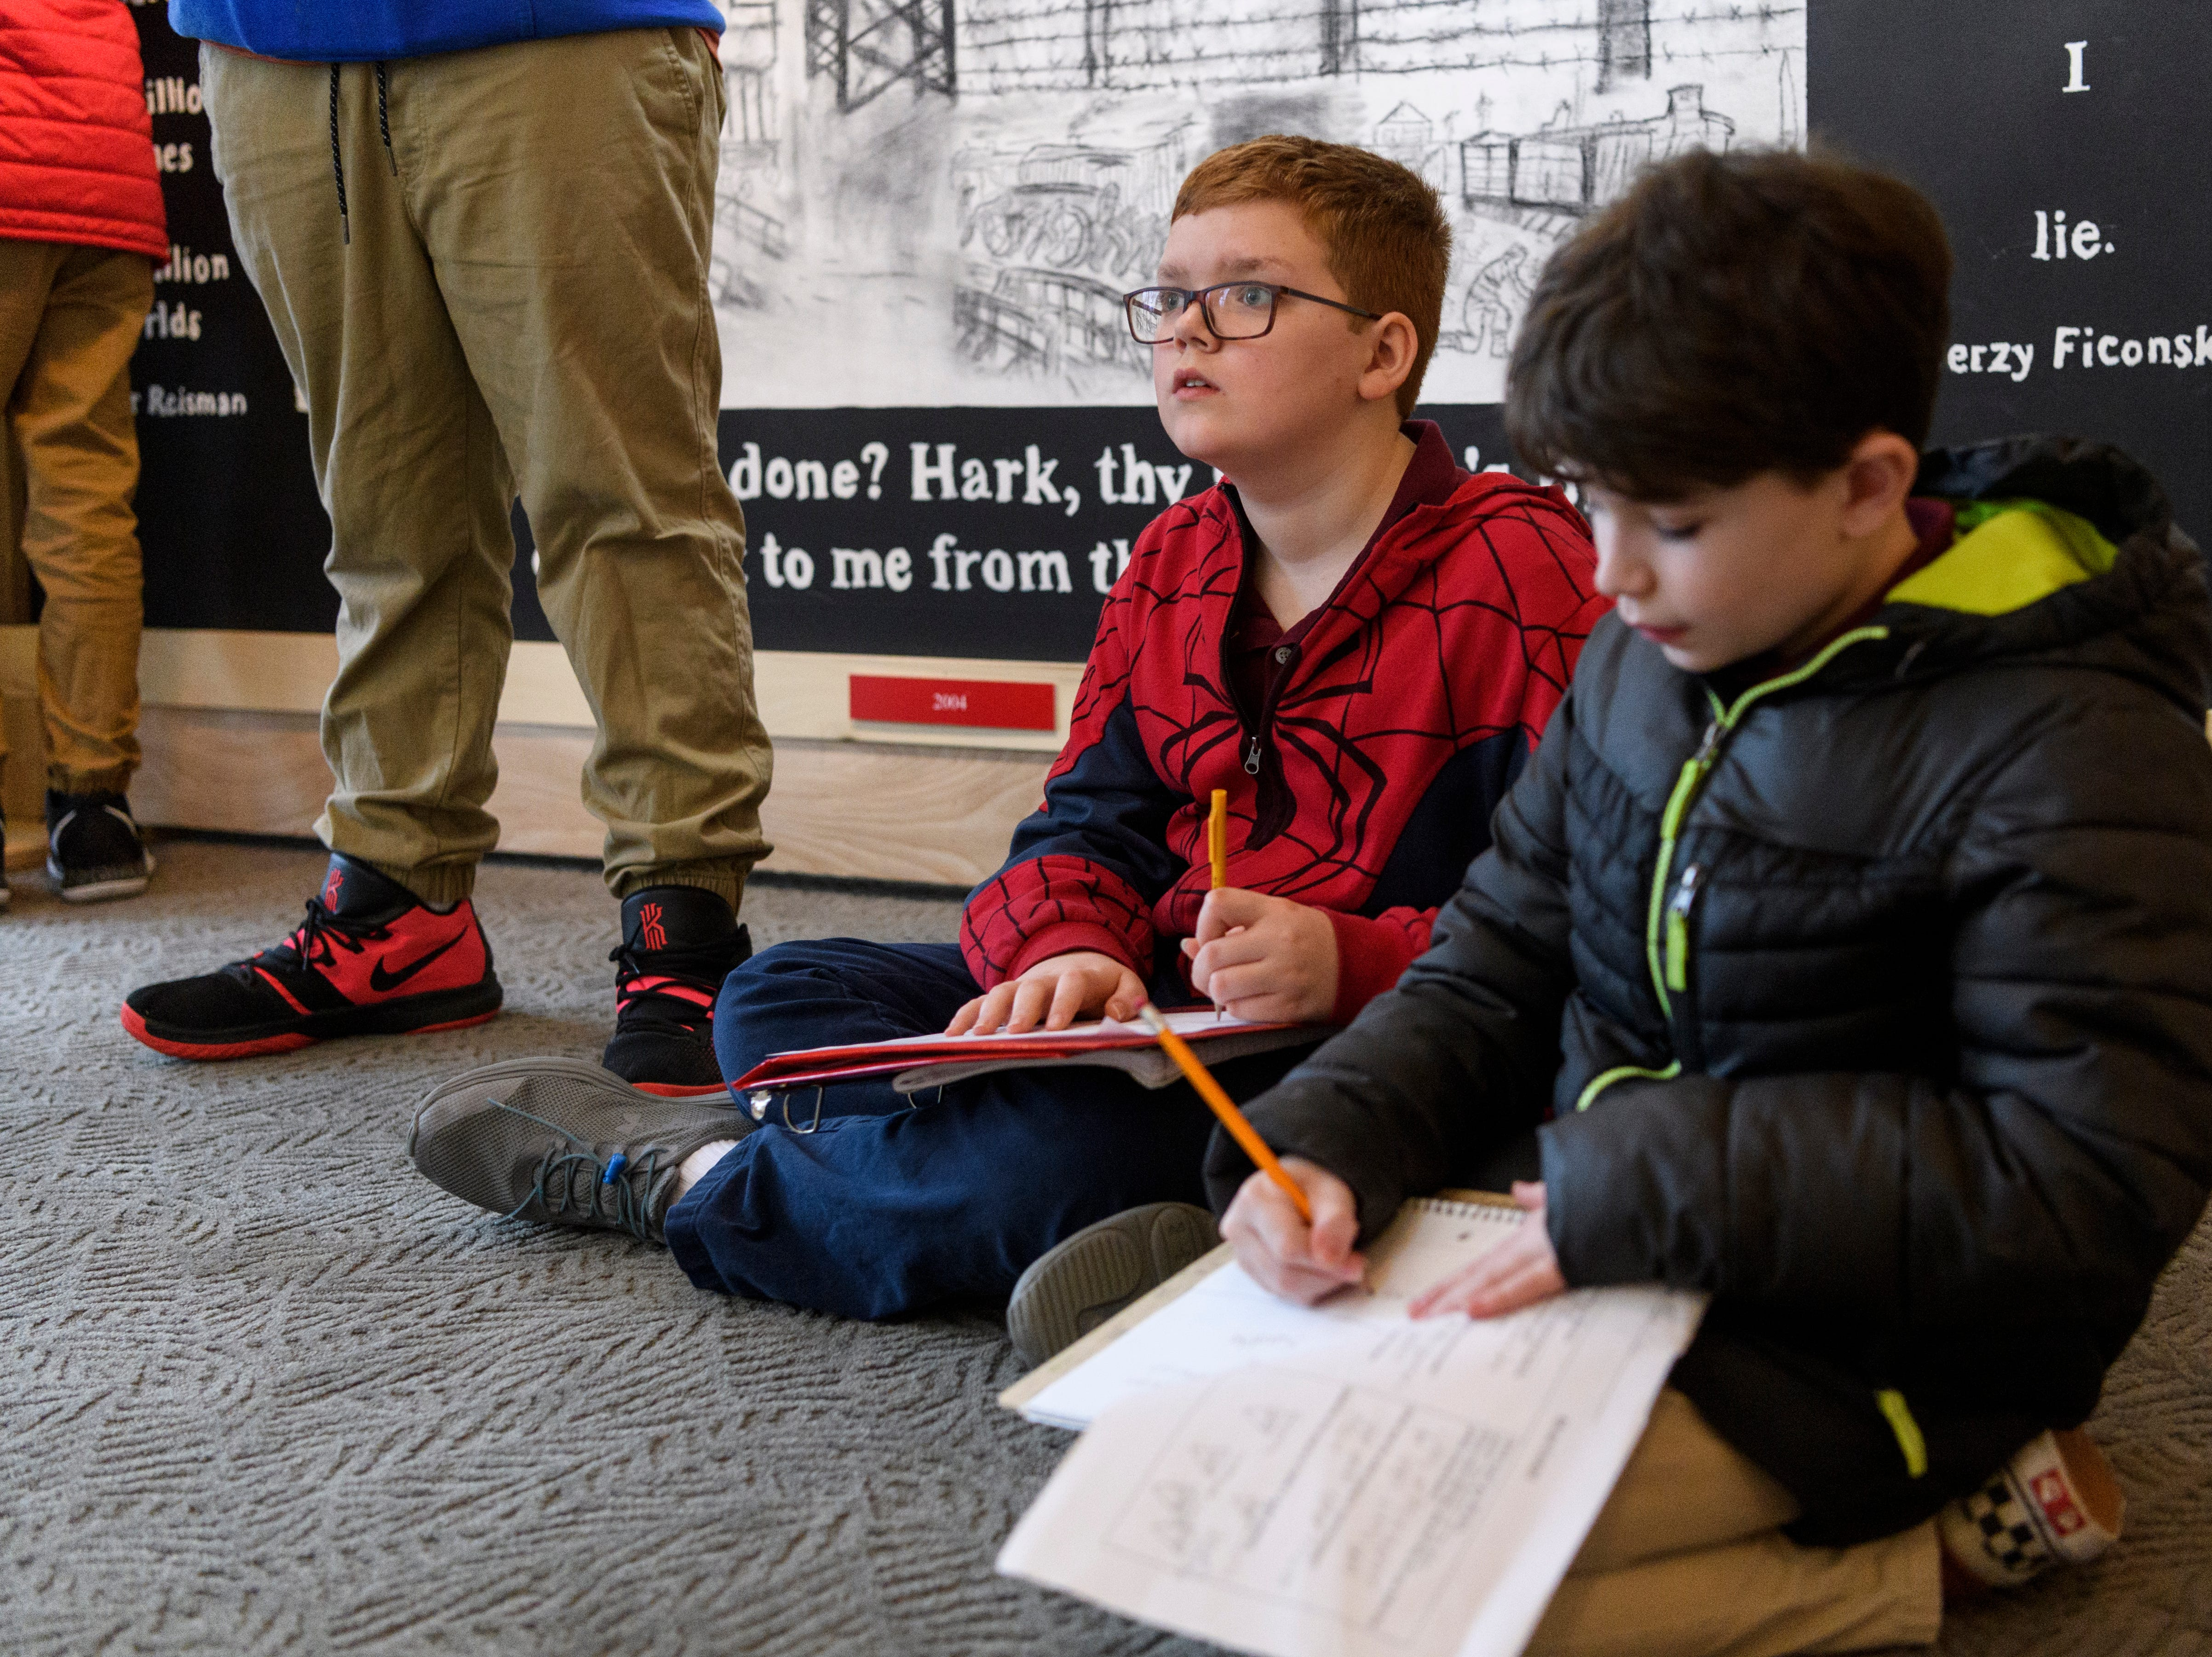 """Jordan Box, left, and Aidan Fisher, right, Thompkins Middle School sixth-graders, observe and take notes on the murals displayed in the """"A New Generation Remembers"""" Holocaust exhibit at Temple Adath B'nai Israel in Evansville, Ind., Wednesday, Feb. 6, 2019."""